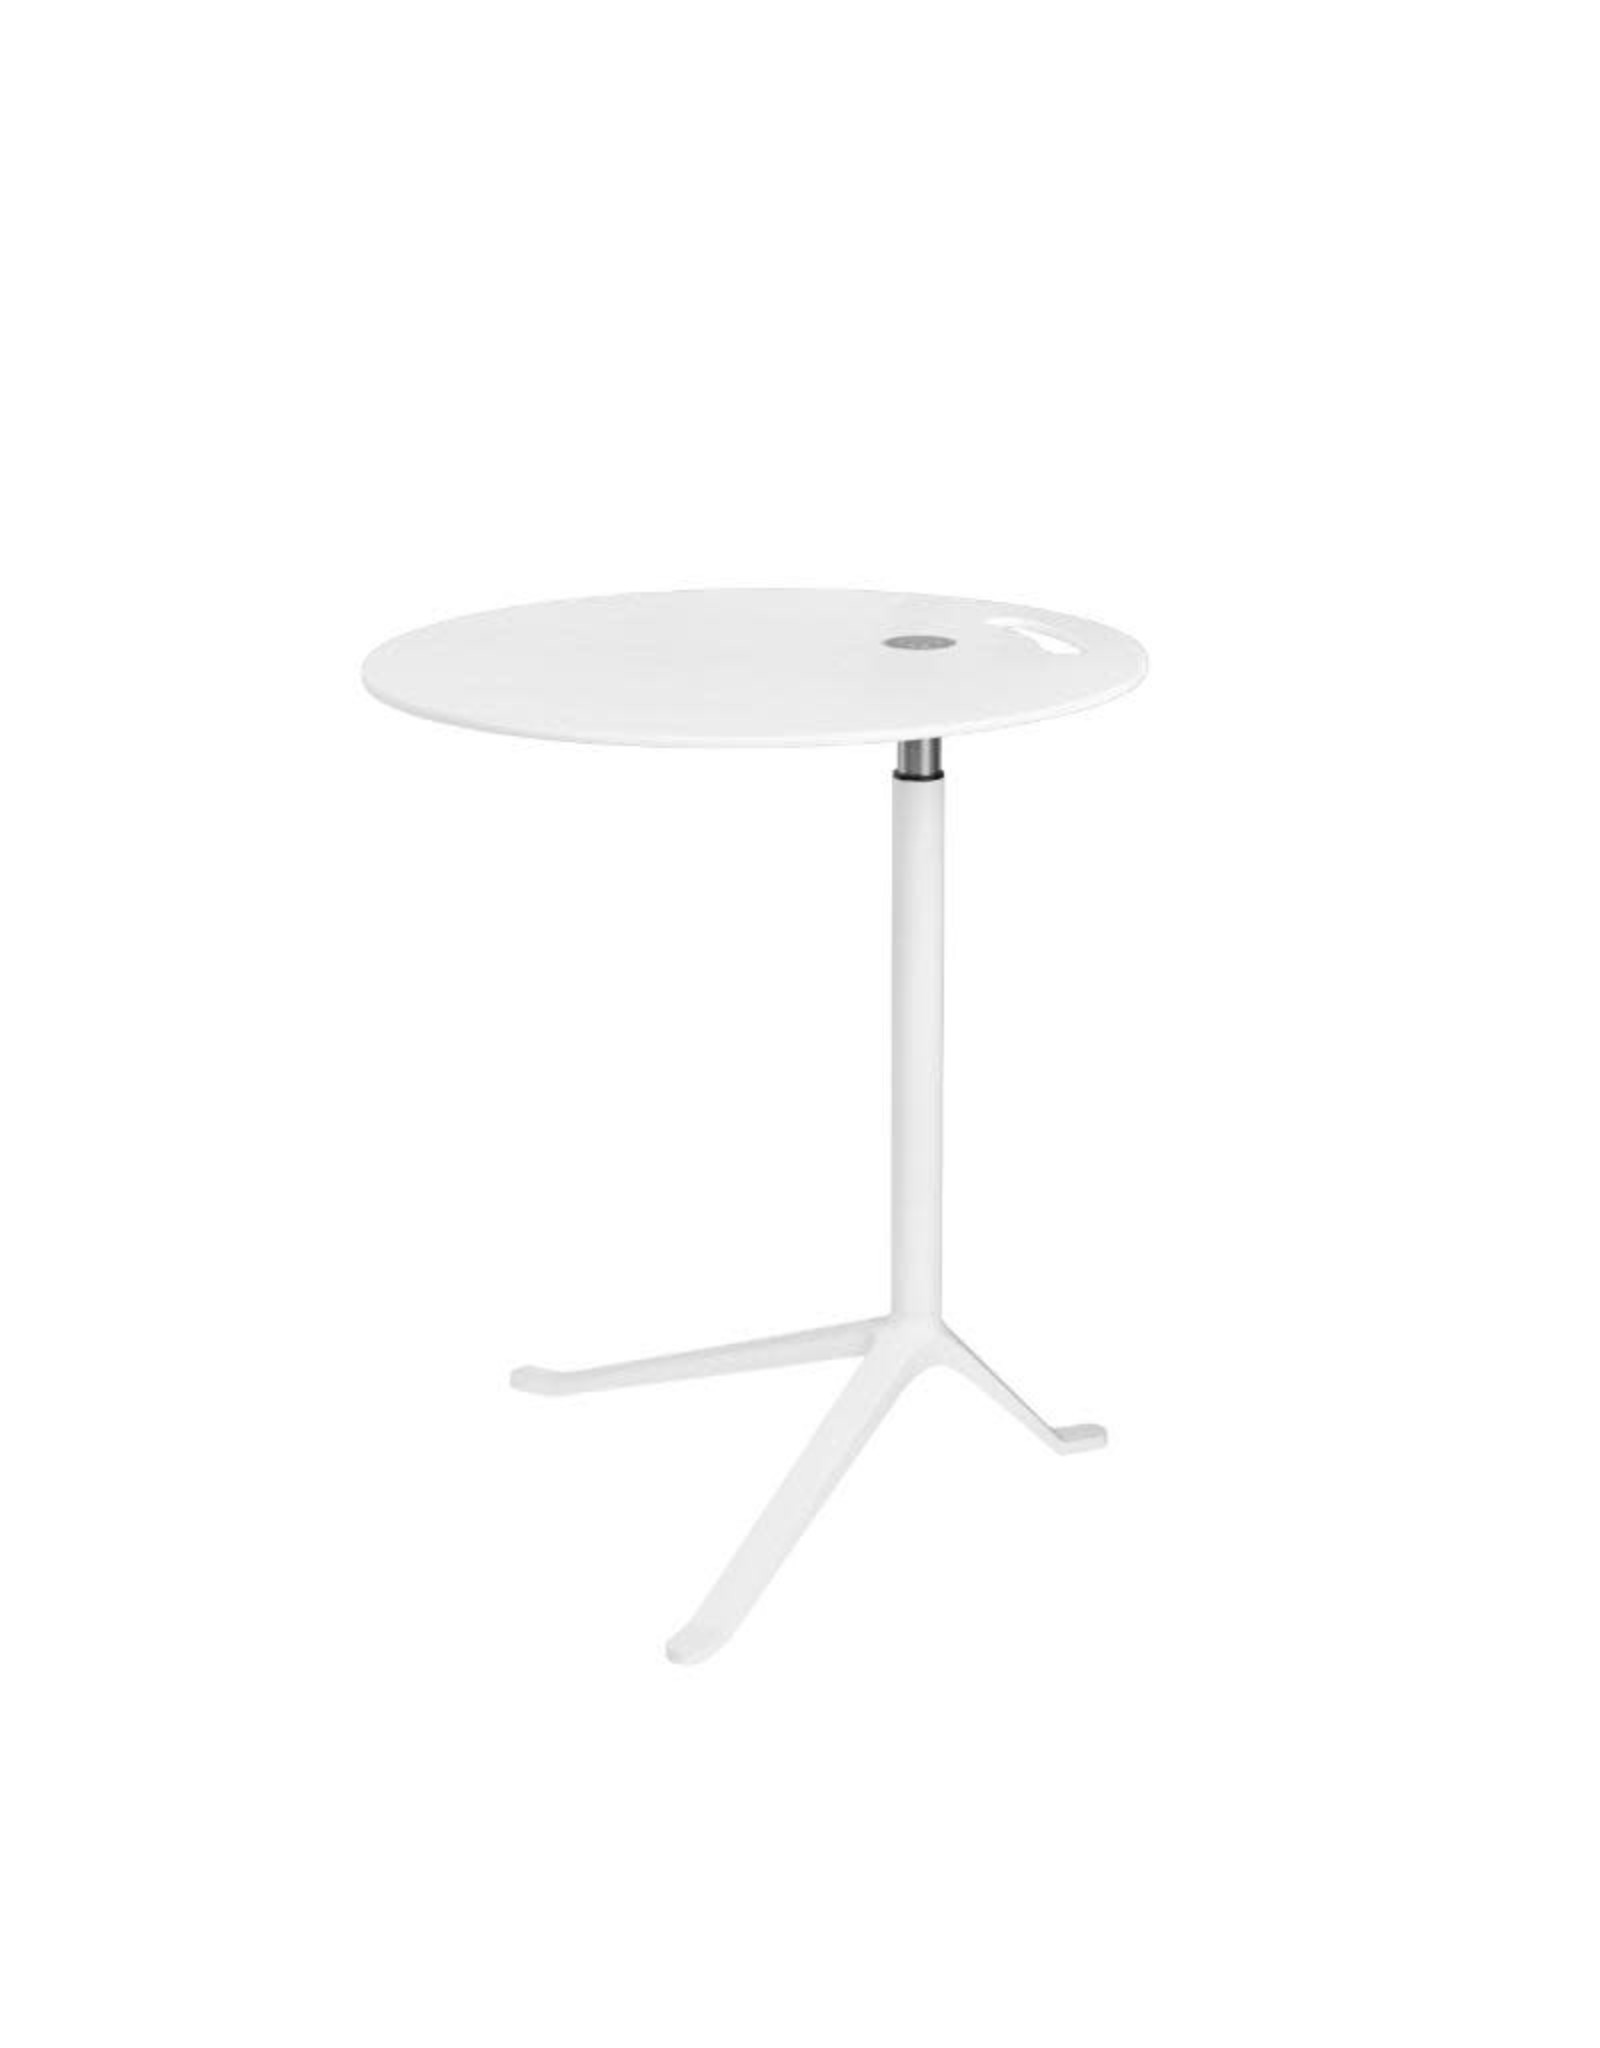 FRITZ HANSEN KS11 LITTLE FRIEND TABLE IN WHITE